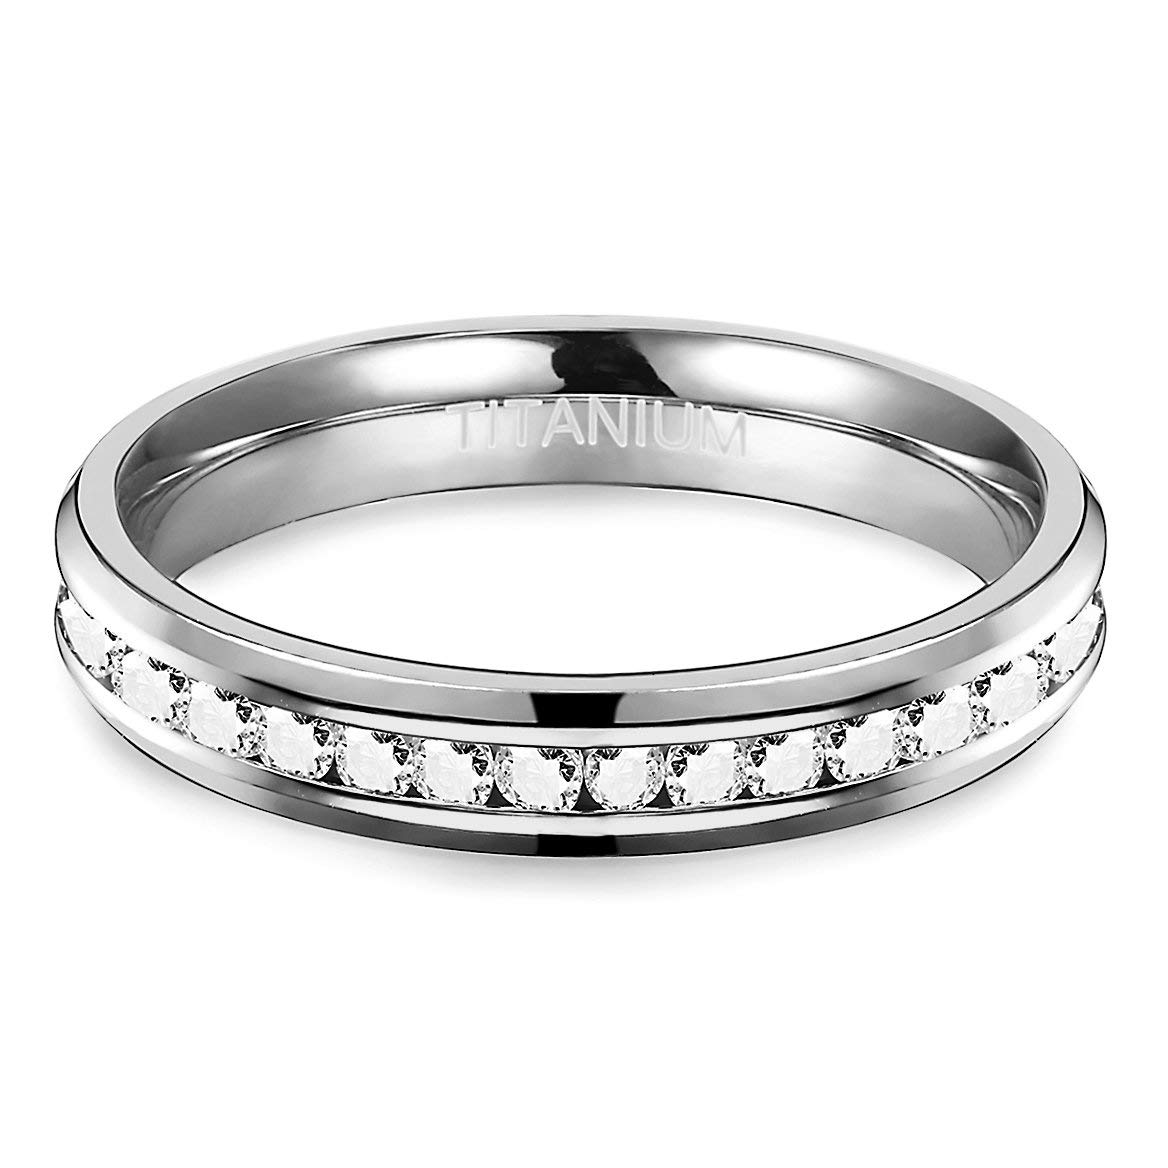 4-9 Available Fiasaso 4MM Womens Titanium Ring Eternity Wedding Engagement Band Ring with CZ